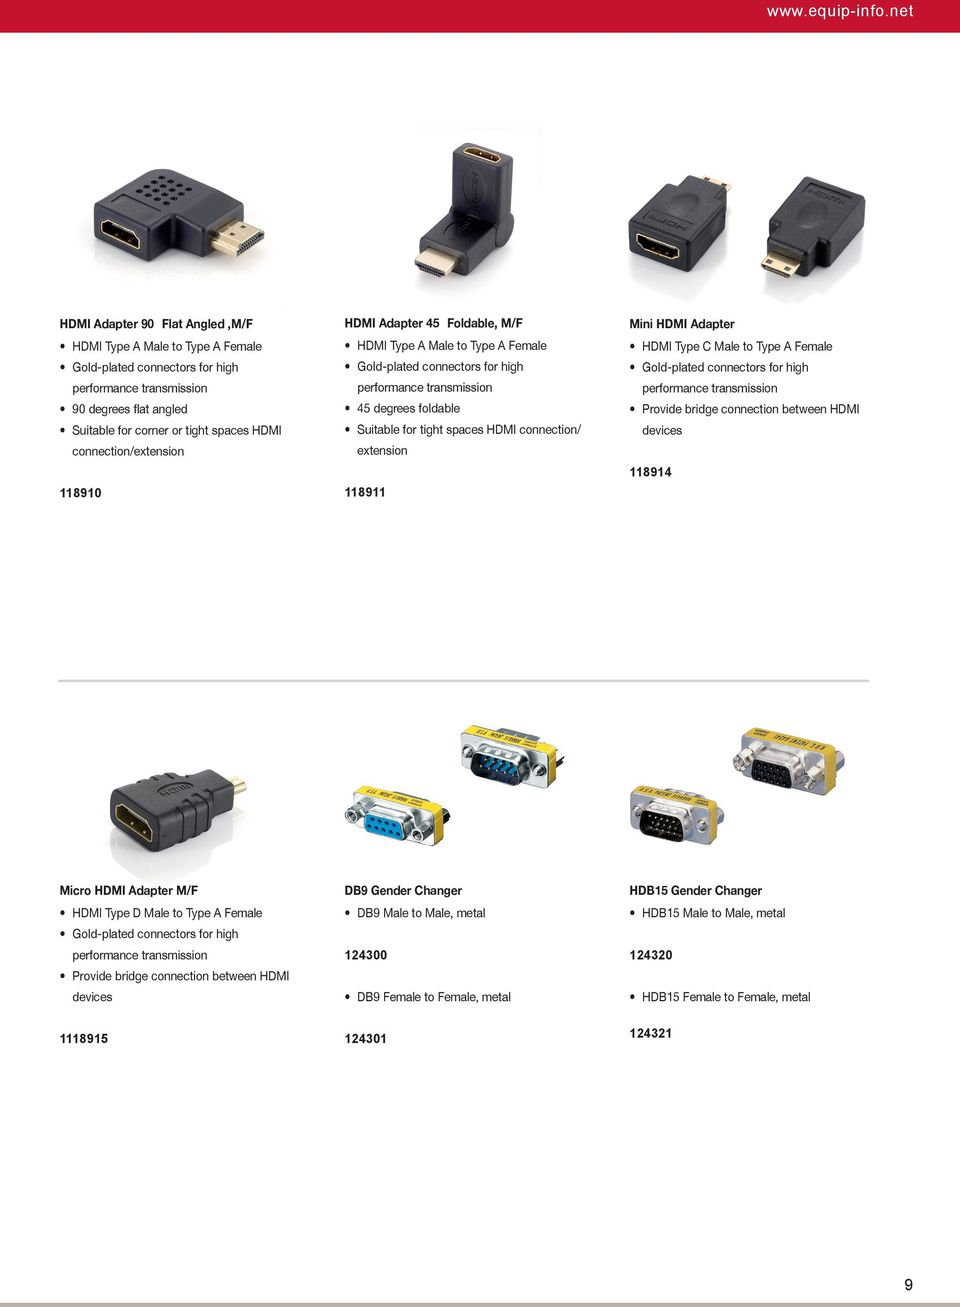 Catalog Pdf Rj45 Colors And Wiring Guide Diagram Tia Eia 568 Ab Fiber Optical Connection Extension 118910 Hdmi Adapter 45 Foldable M F Type A Male